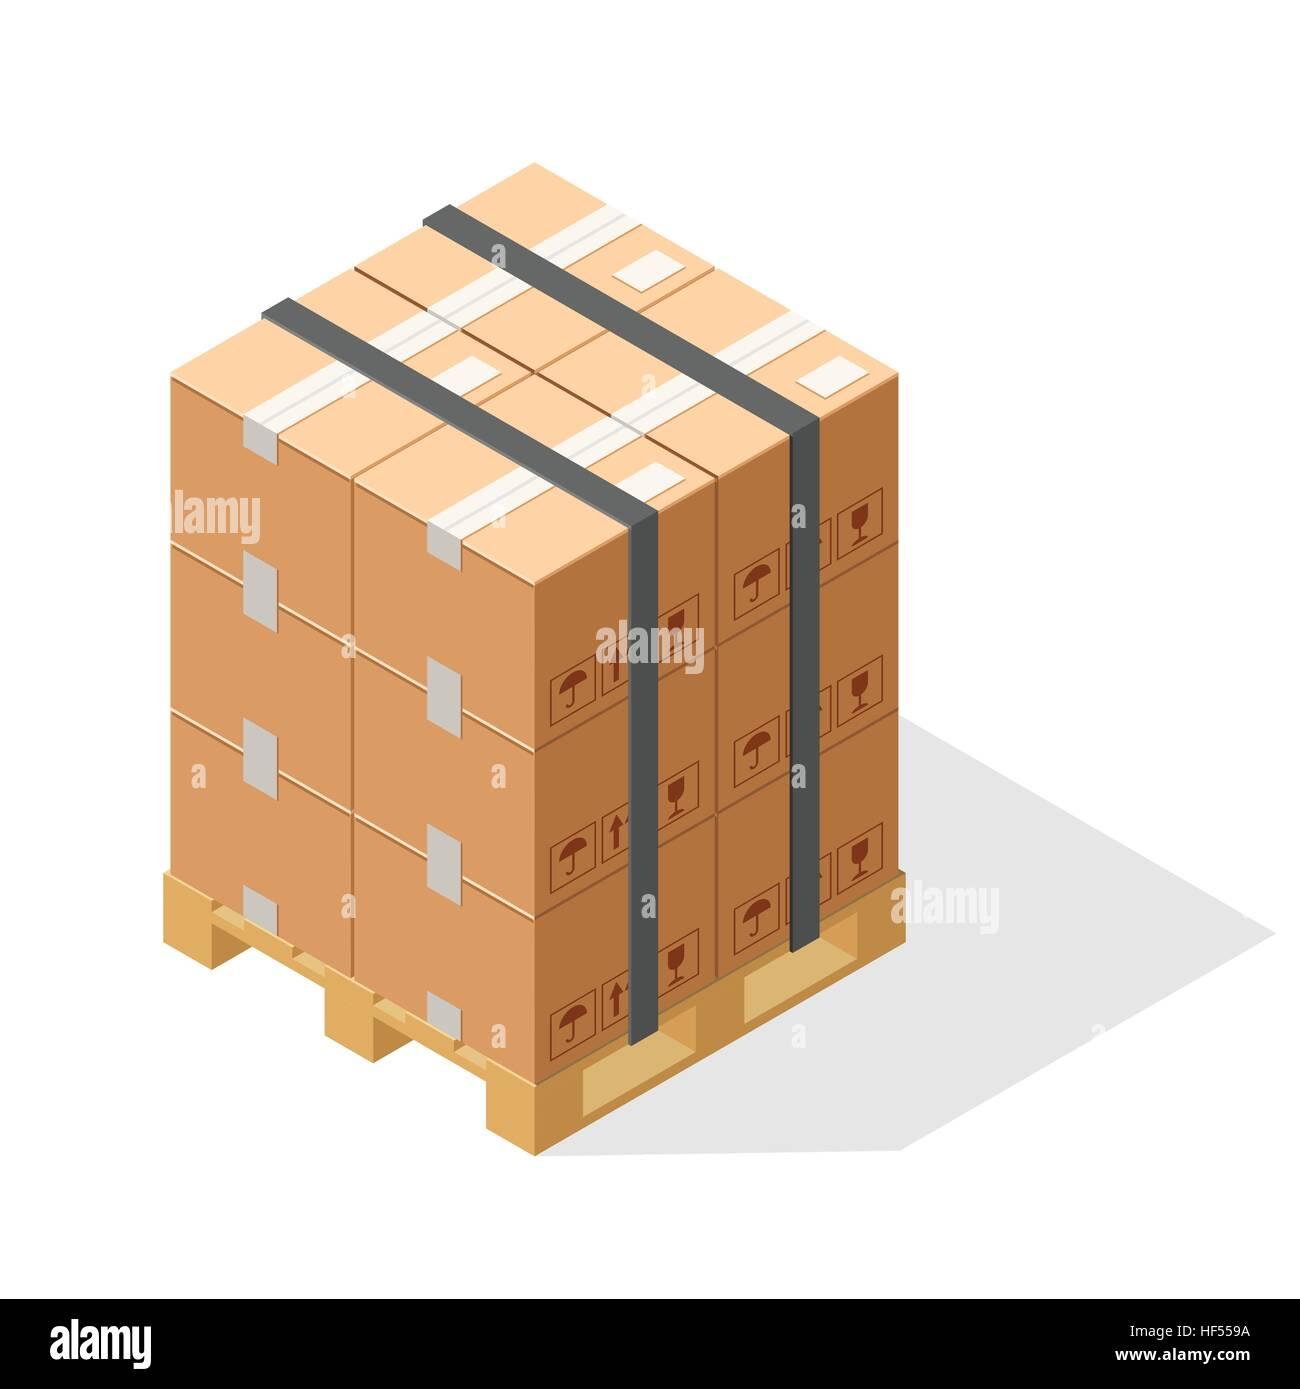 Stack of cartons on wooden pallets. Isometric graphics isolated on white background. - Stock Vector